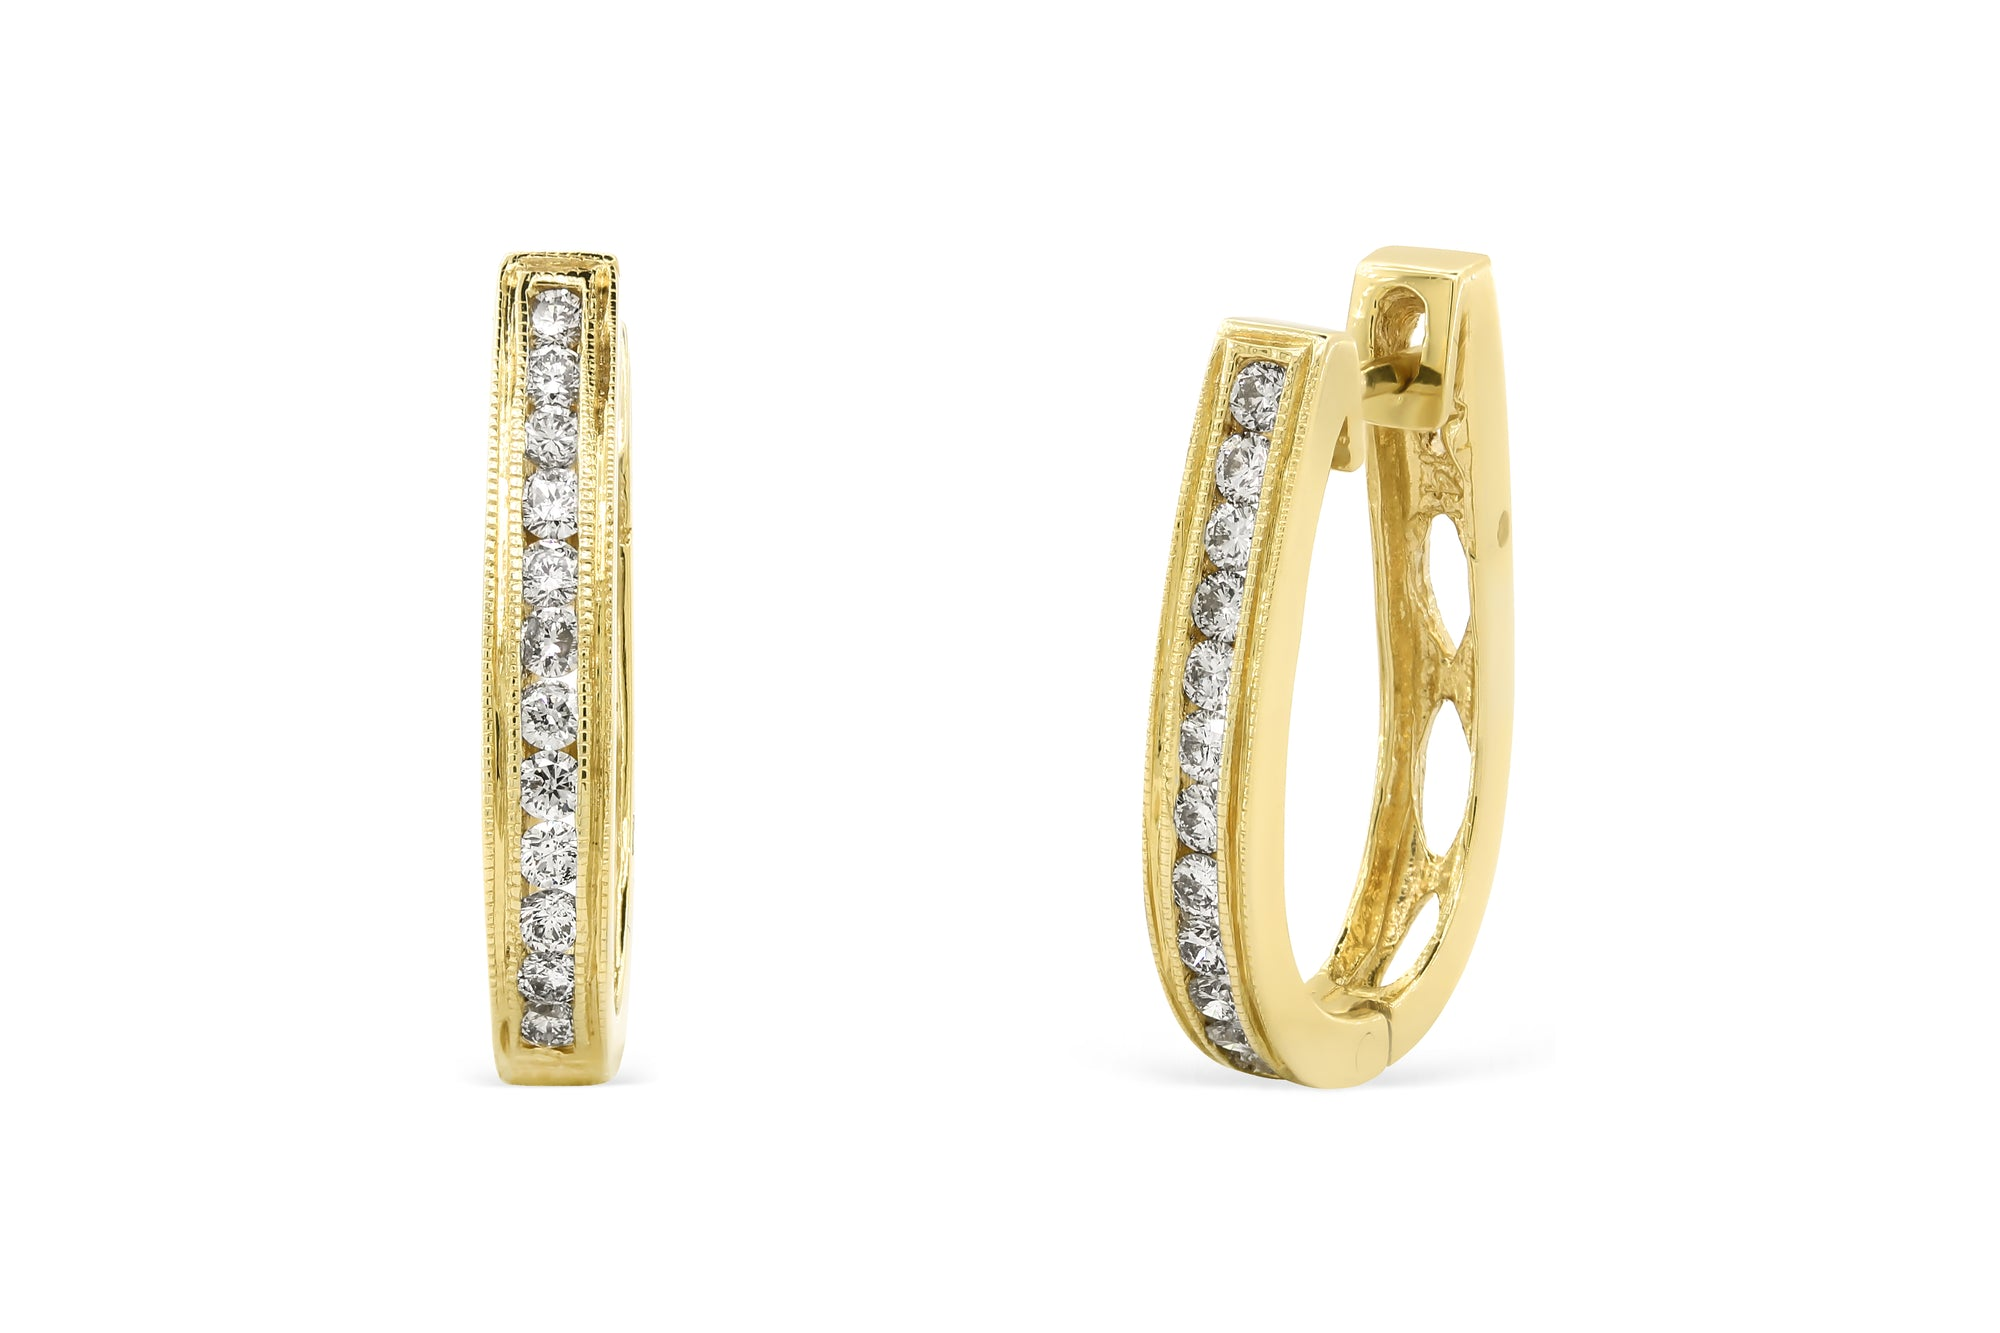 0.56 CT TW Round Diamond Hoop Earrings 14K Yellow Gold DER020 - NorthandSouthJewelry